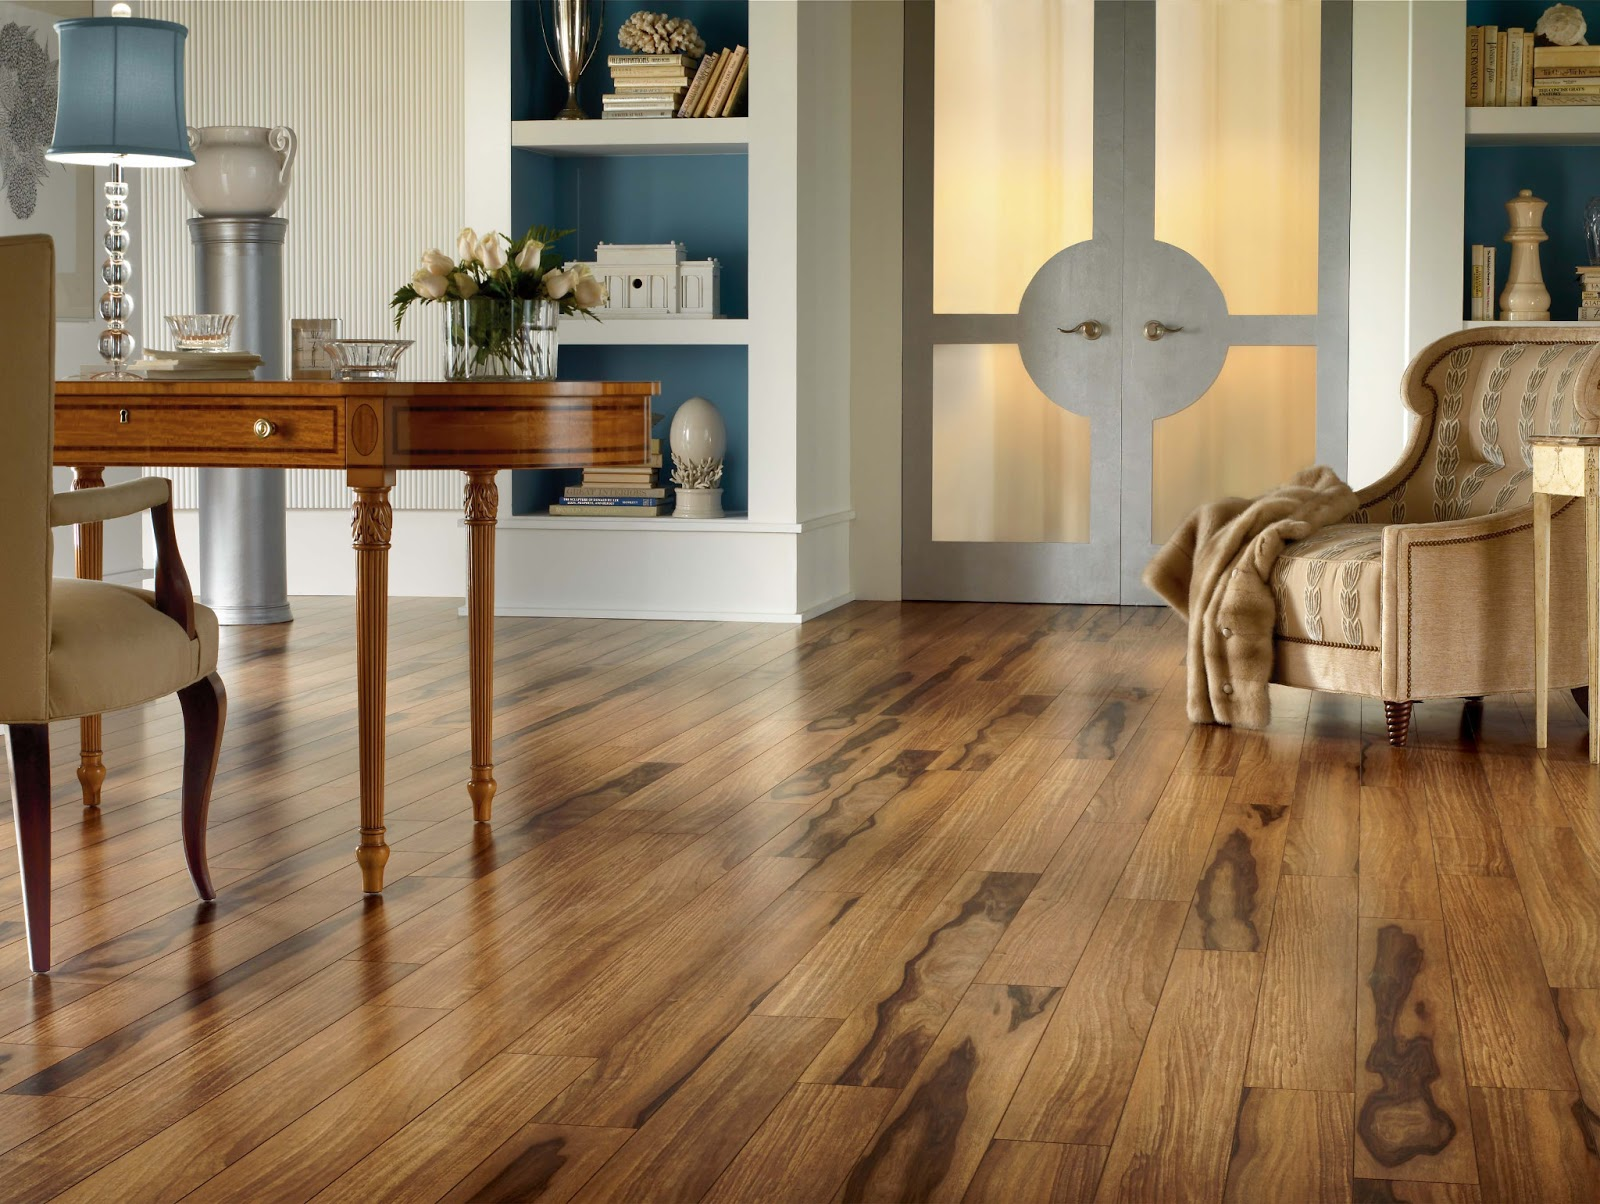 Wood Look Vinyl Flooring : Roomations a shopper s guide to wood flooring